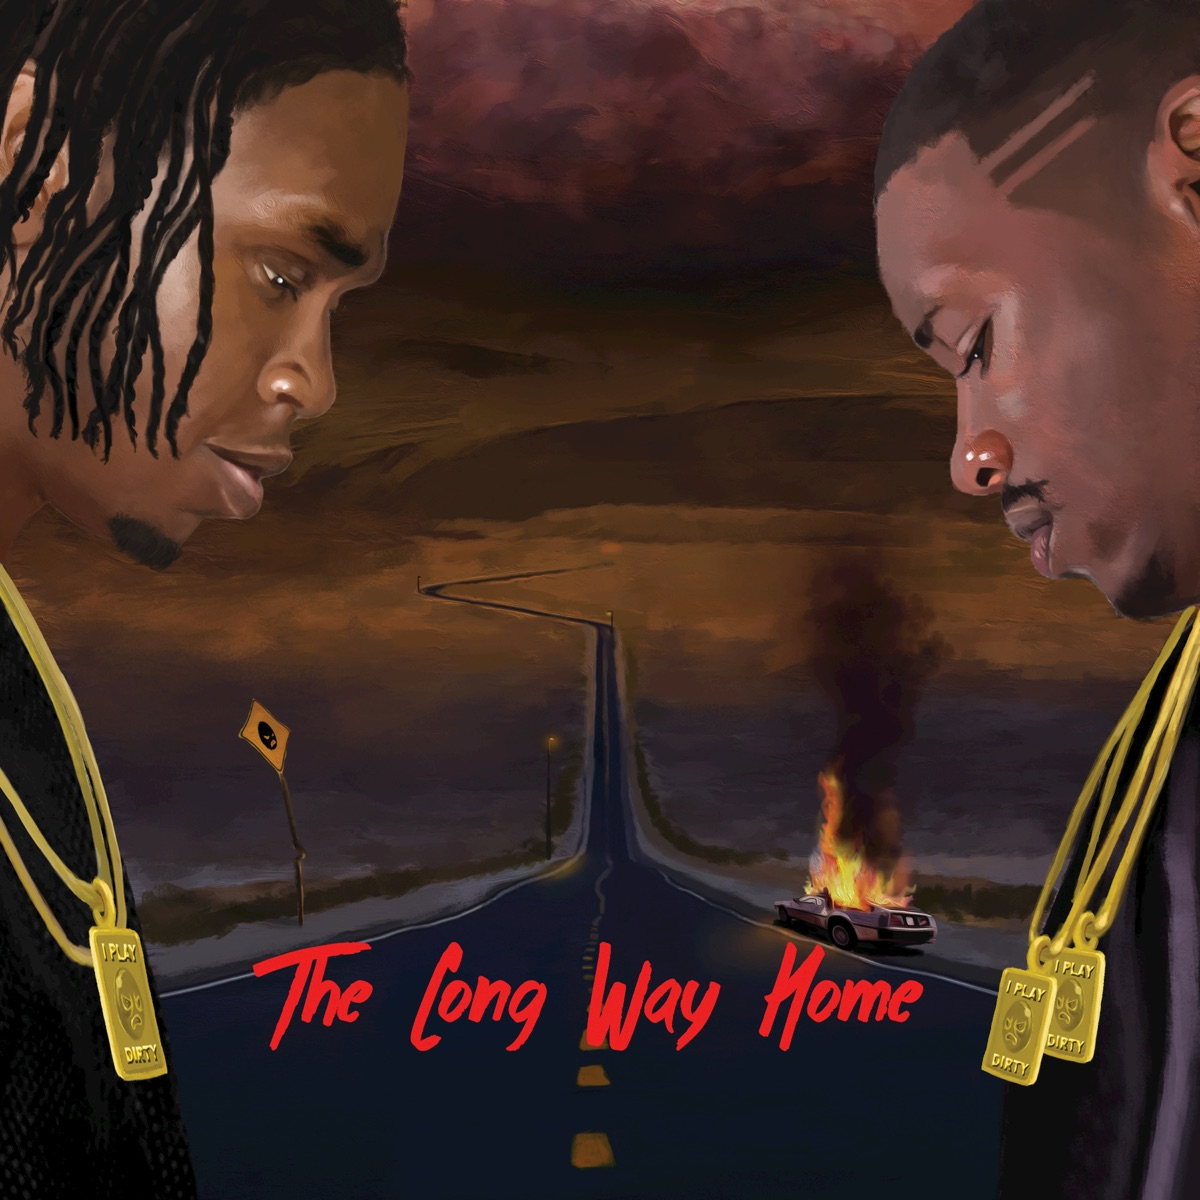 The Long Way Home Deluxe Krept  Konan CD cover